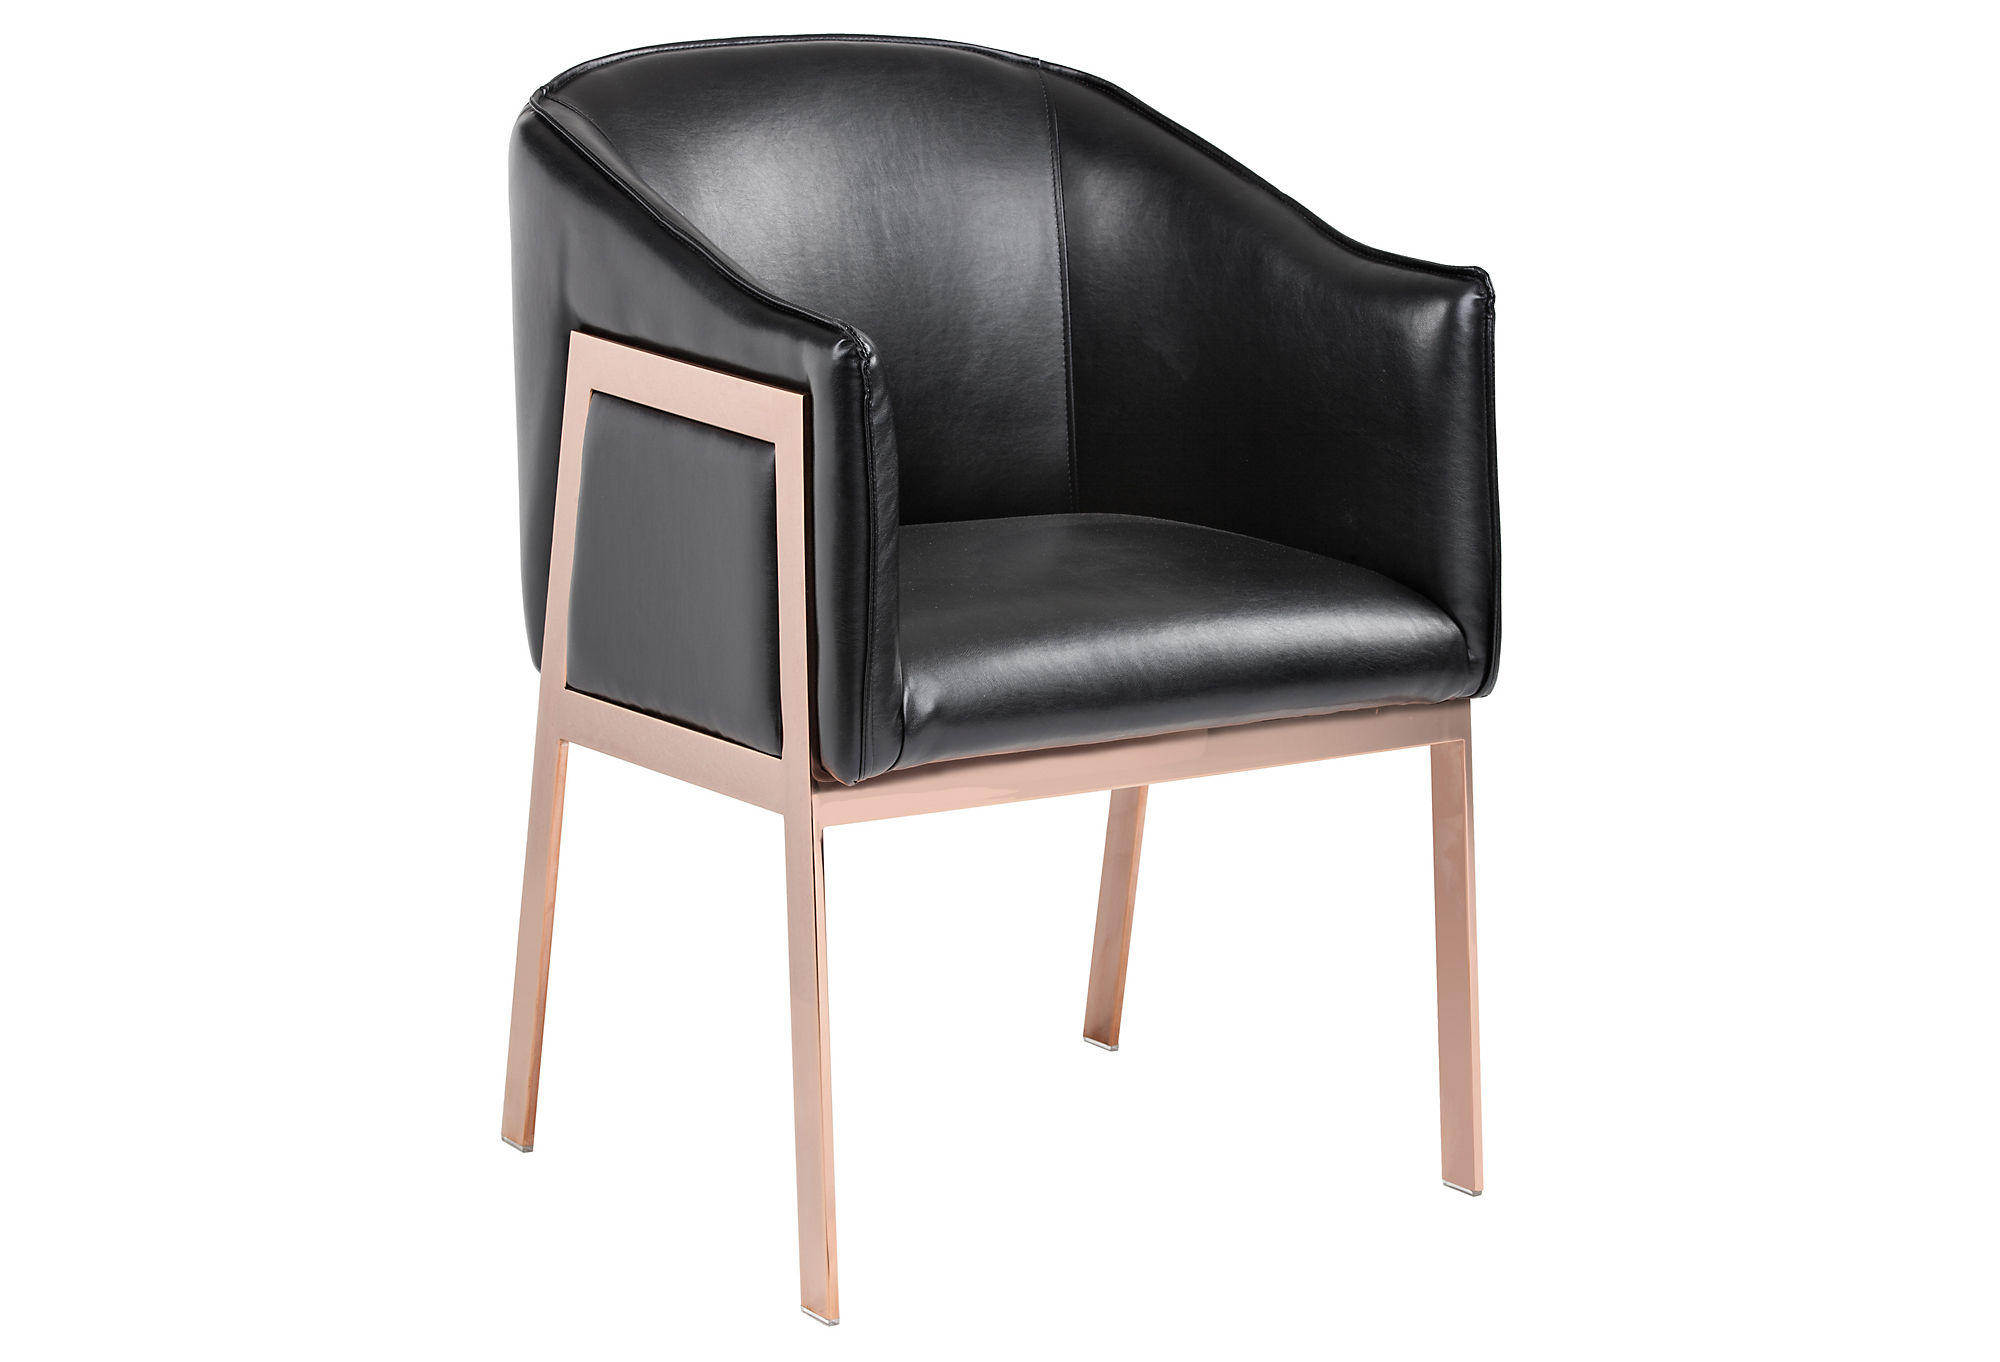 Gold Accent Chairs Rose Gold Accent Chair Black Leather From One Kings Lane